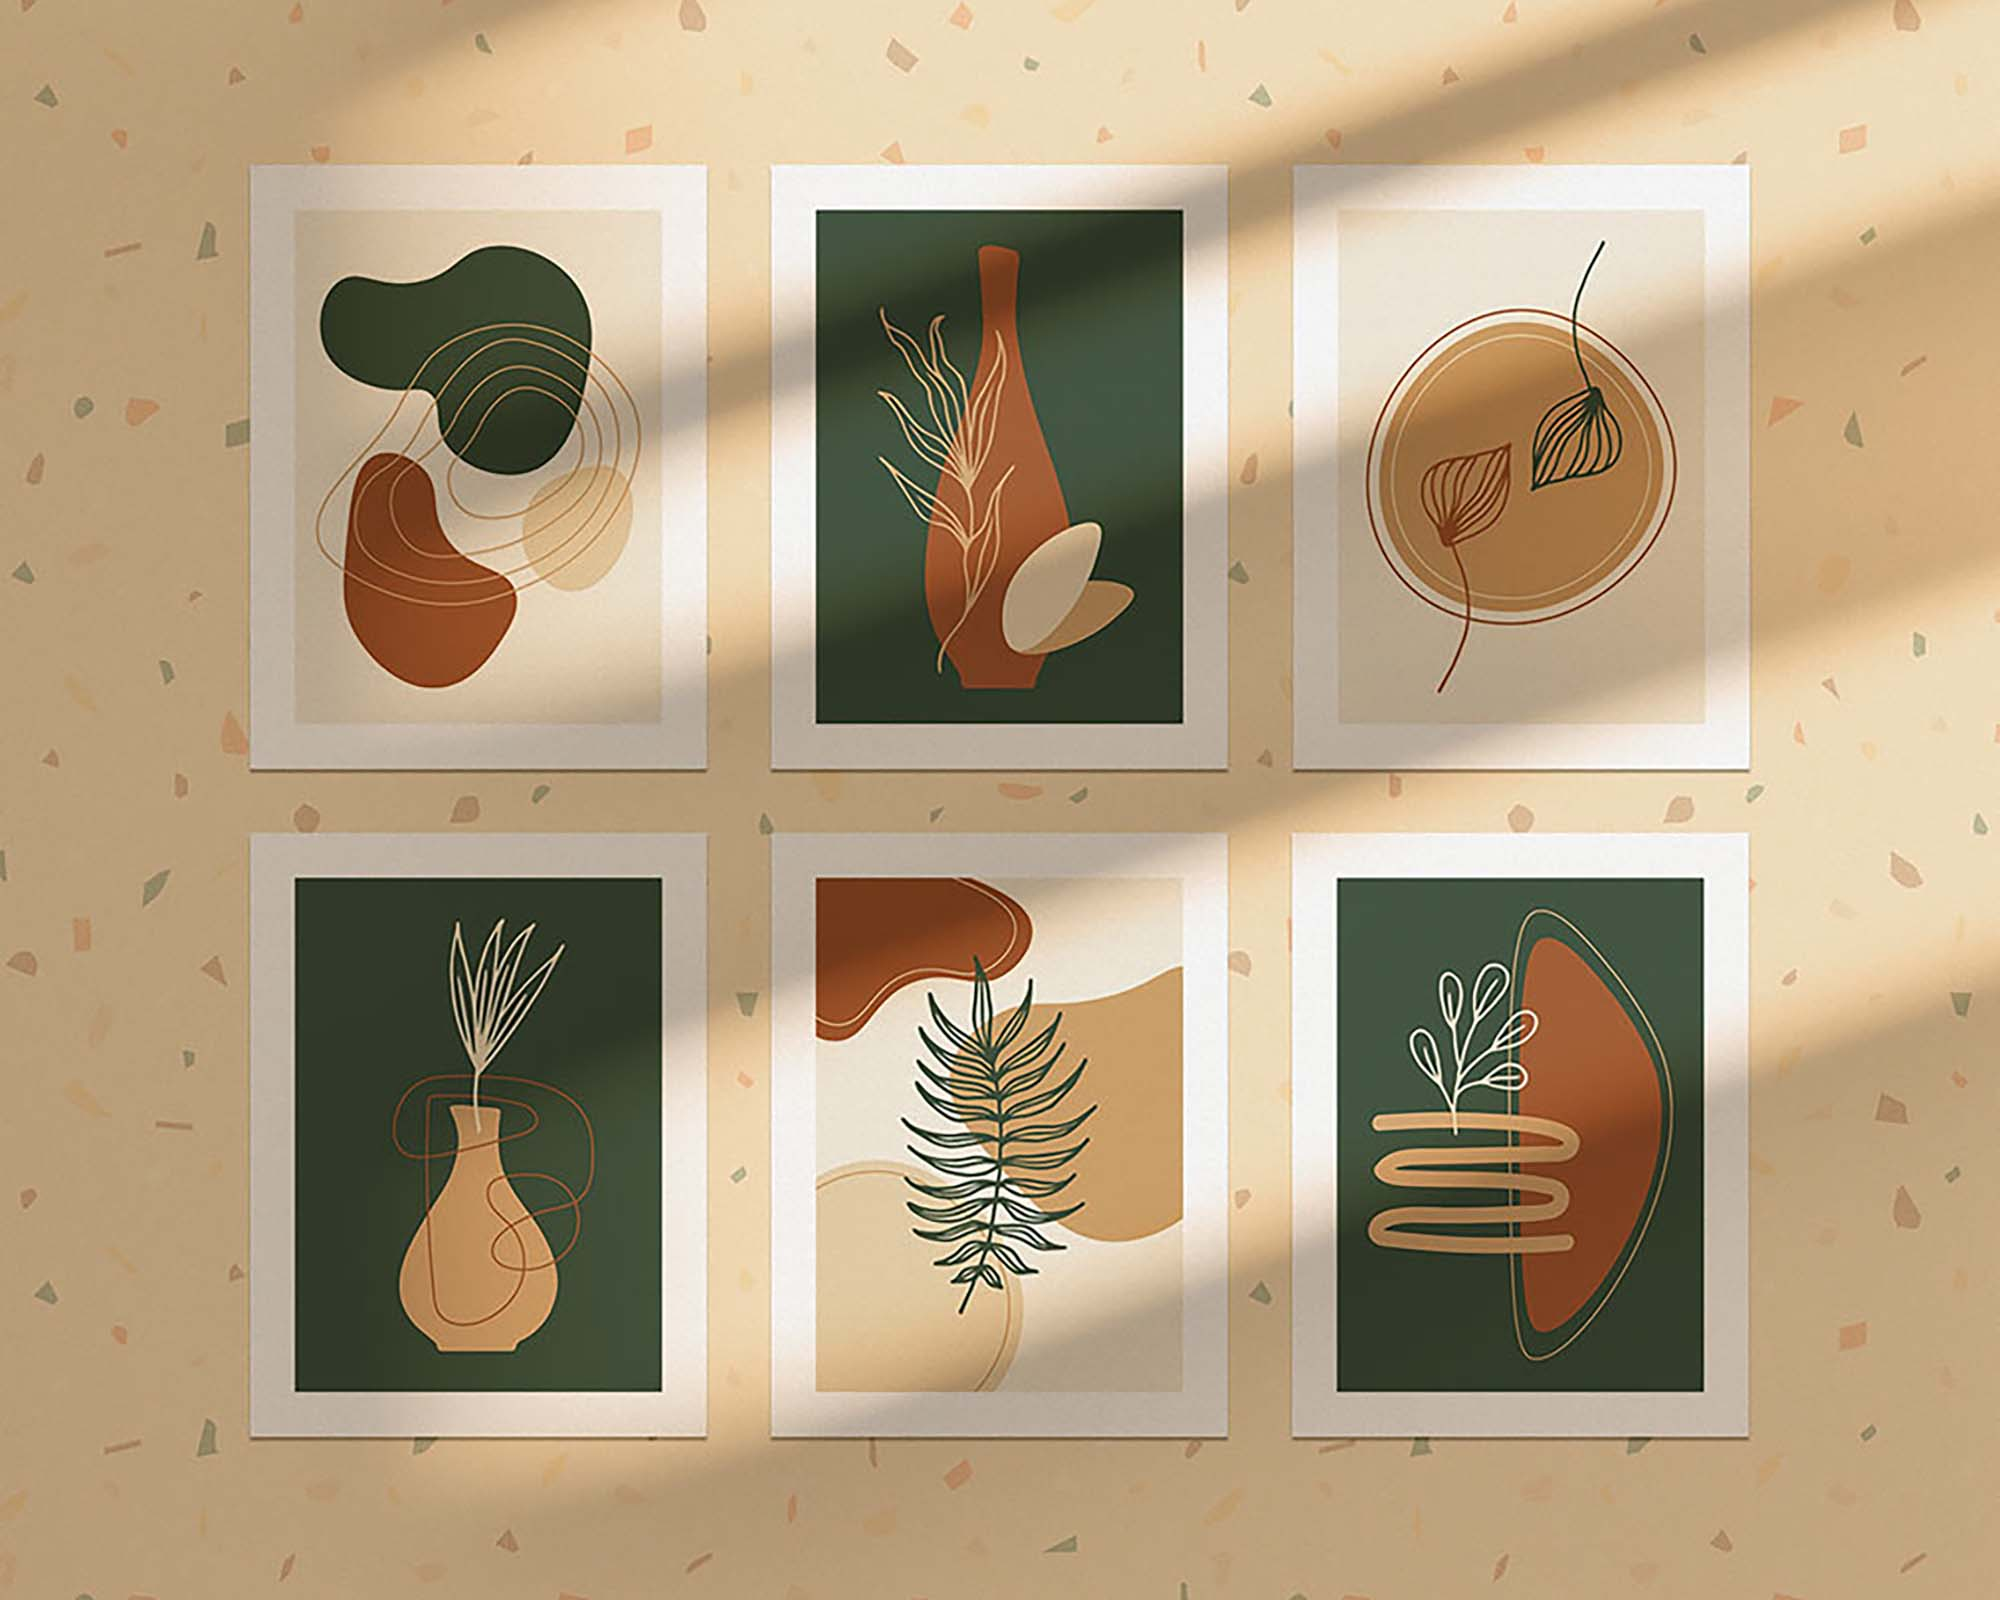 Abstract Shapes 4